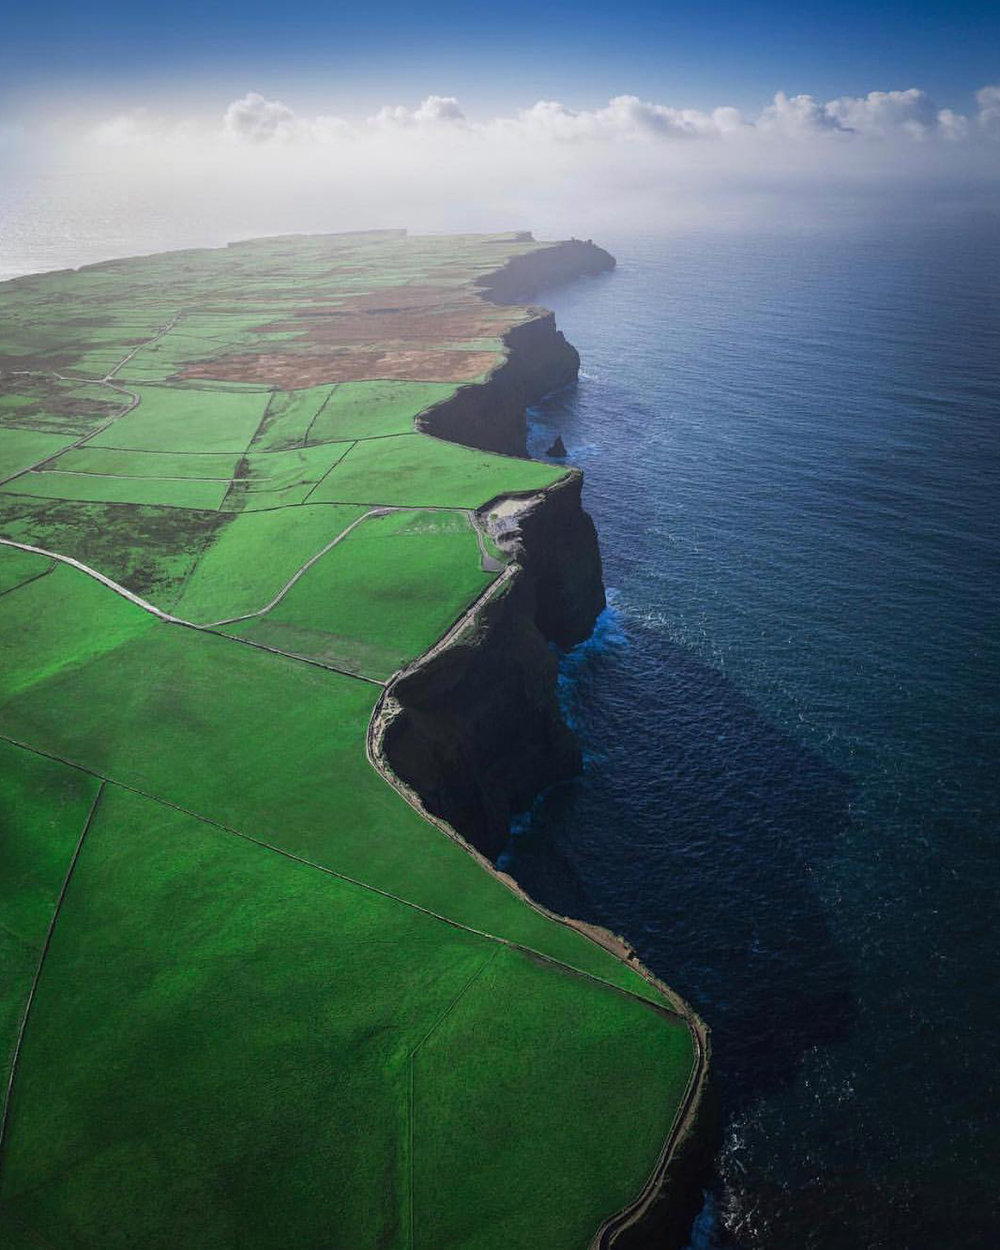 """Happy St. Patrick's Day! Here's an incredible aerial view of the Cliffs of Moher, which stretch for about 8.7 miles (14km) along the Atlantic Ocean in County Clare, Ireland. The cliffs range in height from 390 feet (120m) to 702 feet (214m) and are among the most visited tourist sites in Ireland, with about 1.5 million visitors a year.  52°58'18.3""""N, 9°25'34.8""""W  Source imagery: Max Malloy Photography"""